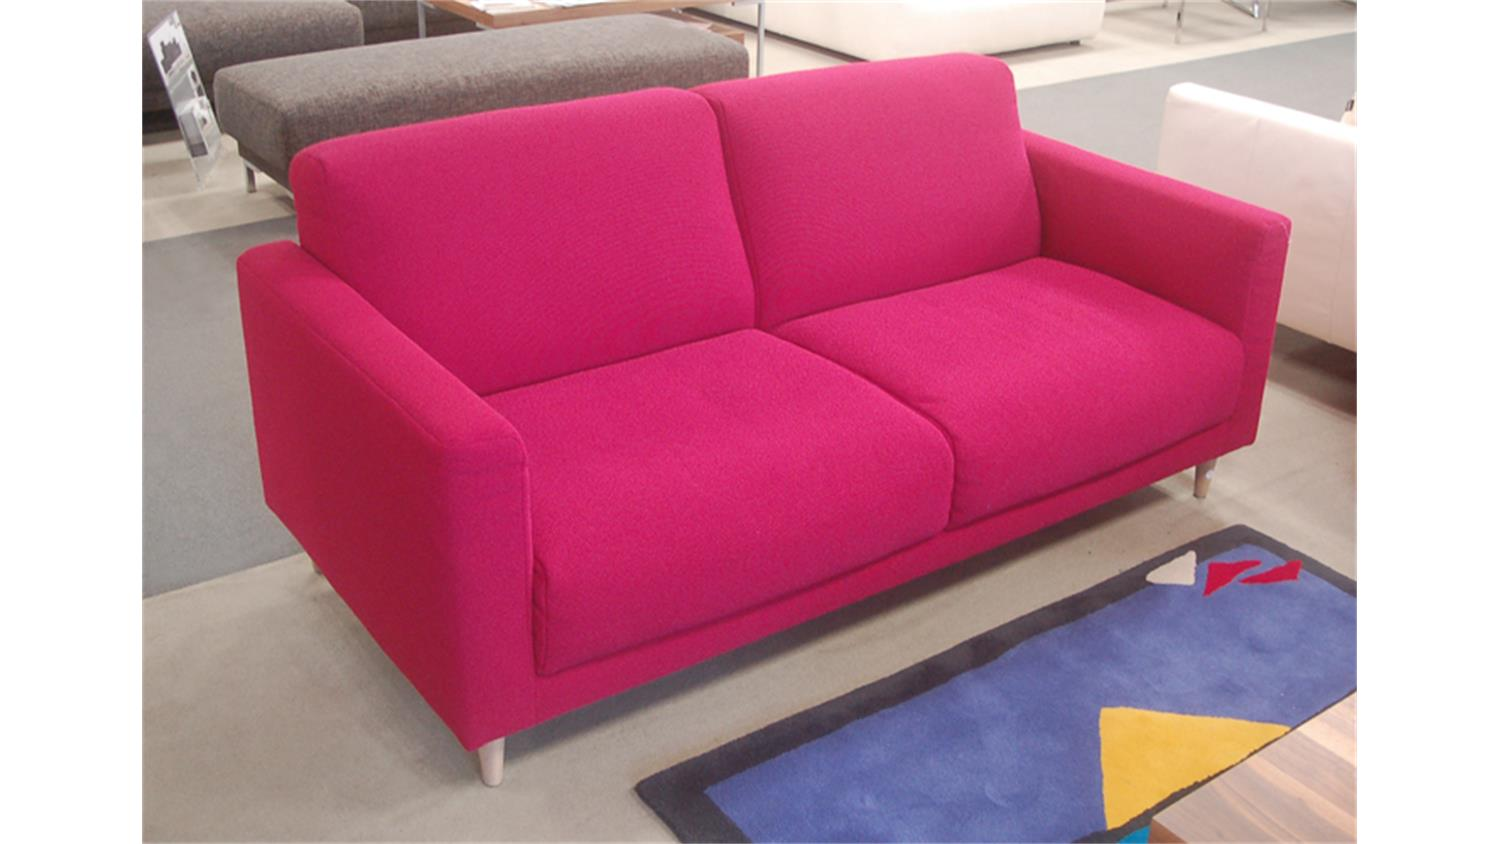 Rolf benz sofa freistil 141 stoff violettrot for Freistil 141 rolf benz